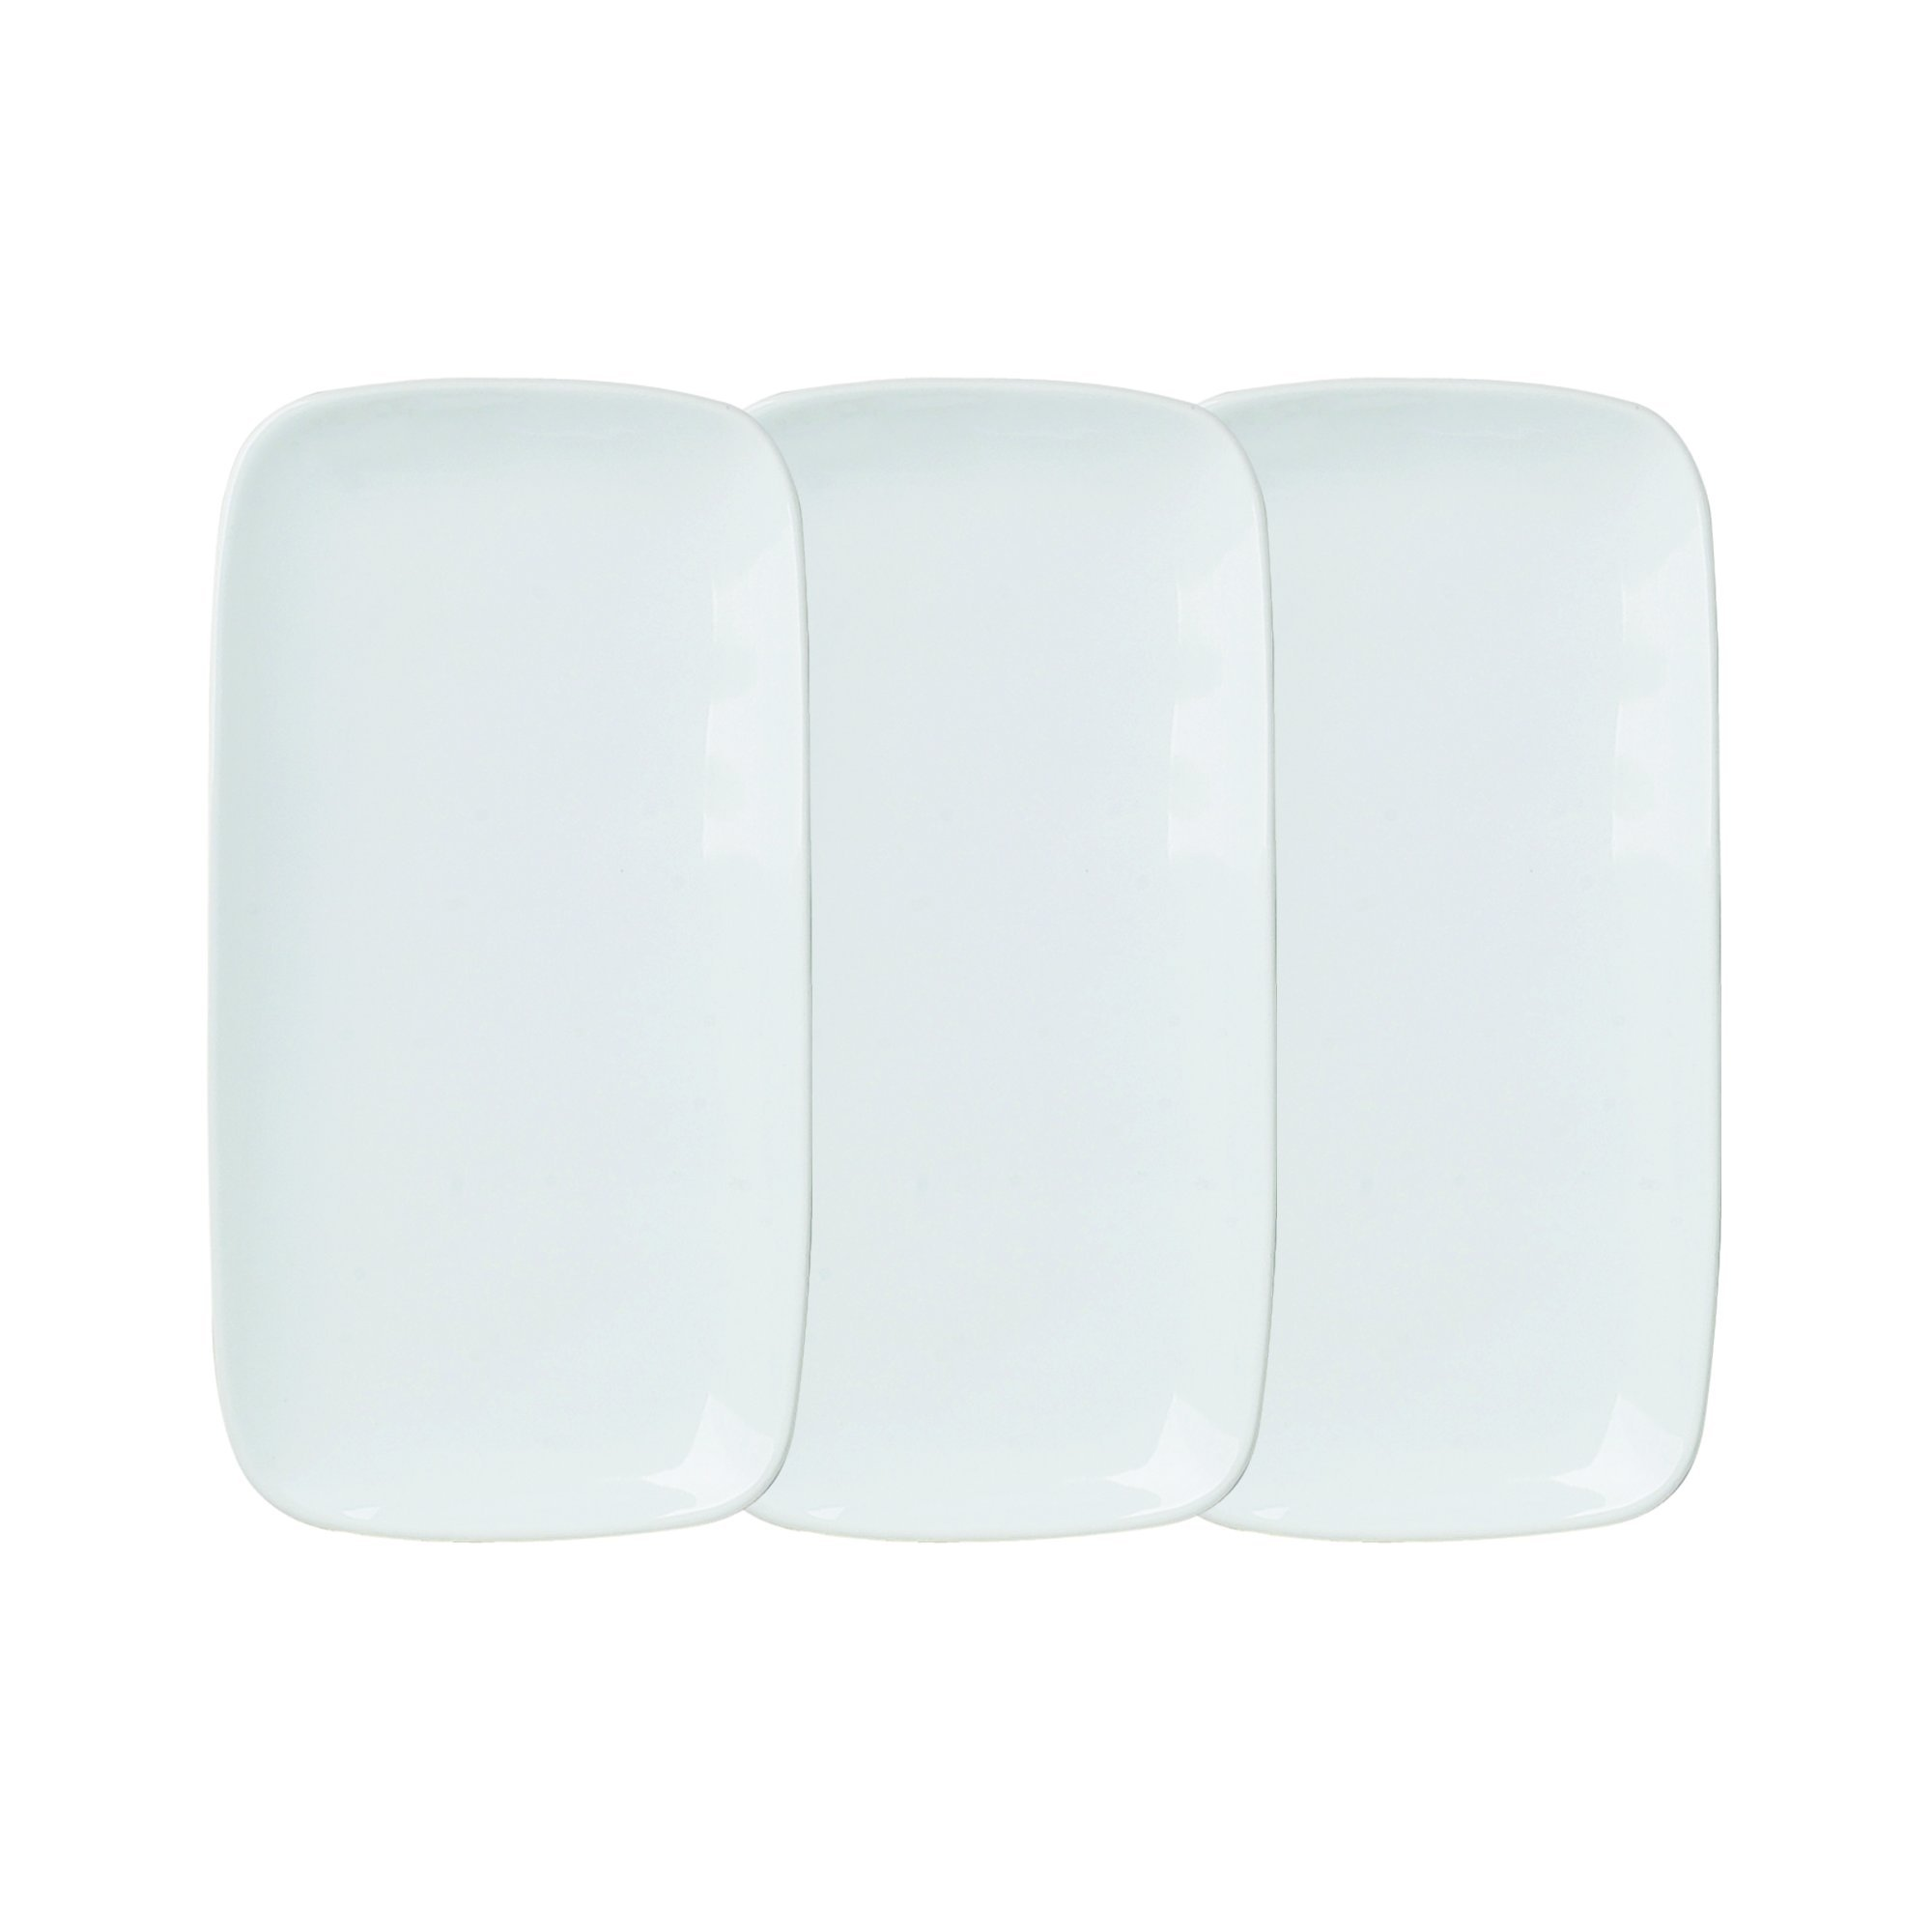 HIC Sushi Plate Set, Fine Porcelain, White, 4.5 x 9-Inches